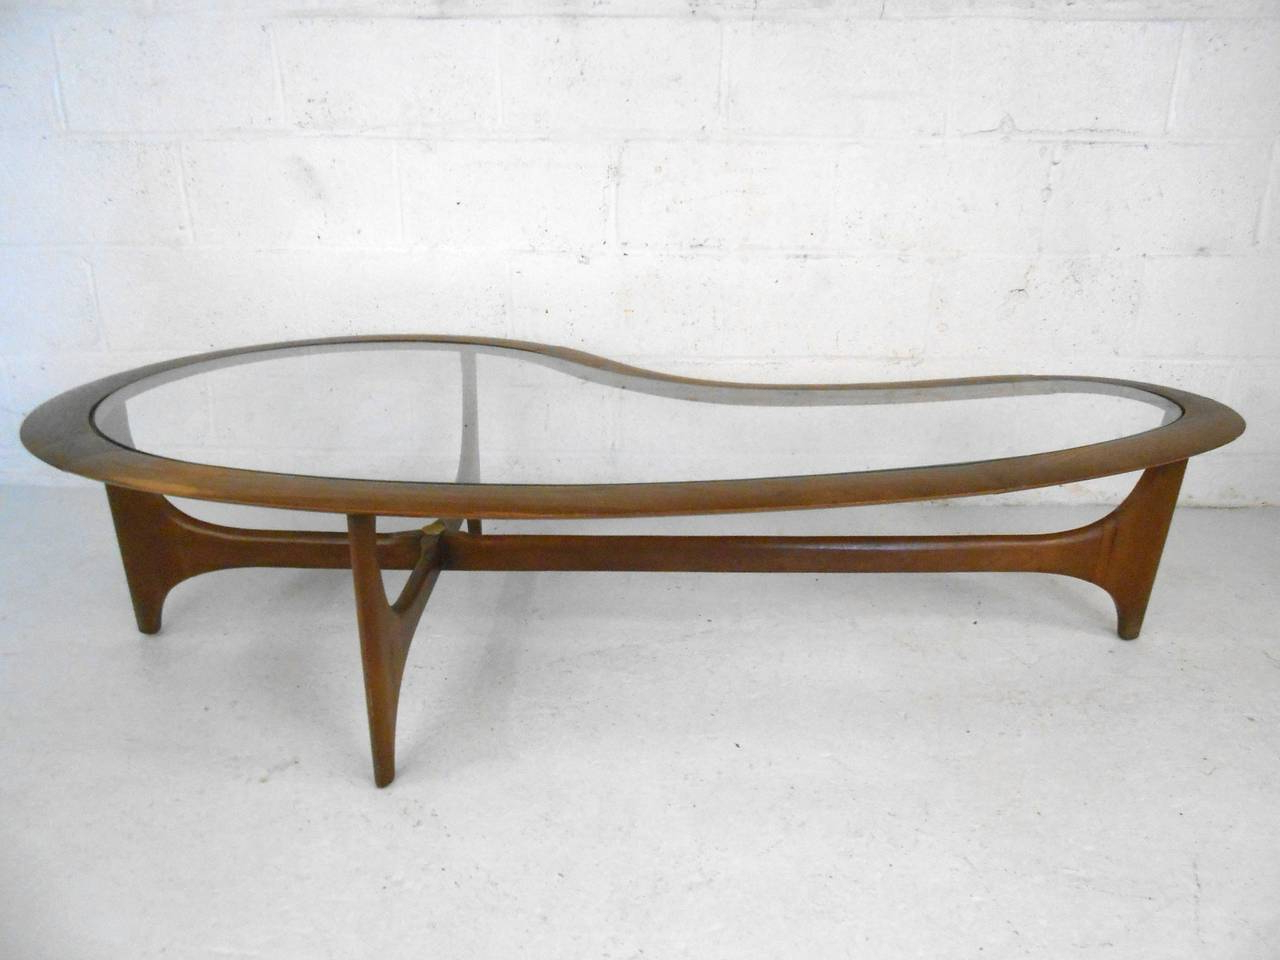 Best And Newest Furniture: Alluring Kidney Shaped Coffee Table With Futuristic Intended For Jelly Bean Coffee Tables (View 3 of 20)